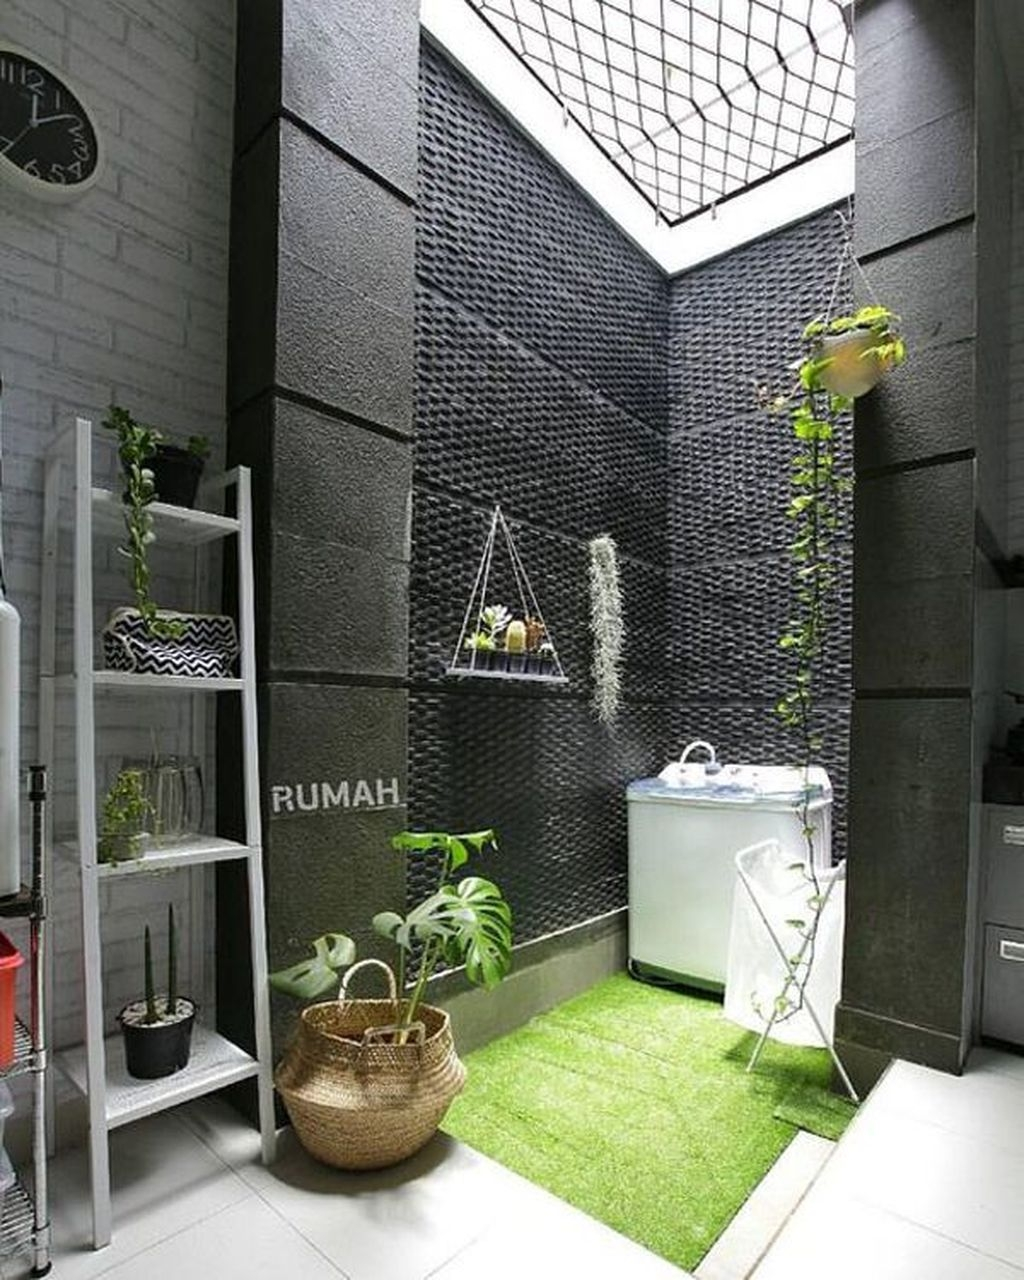 Charming Small Laundry Room Design Ideas For You10